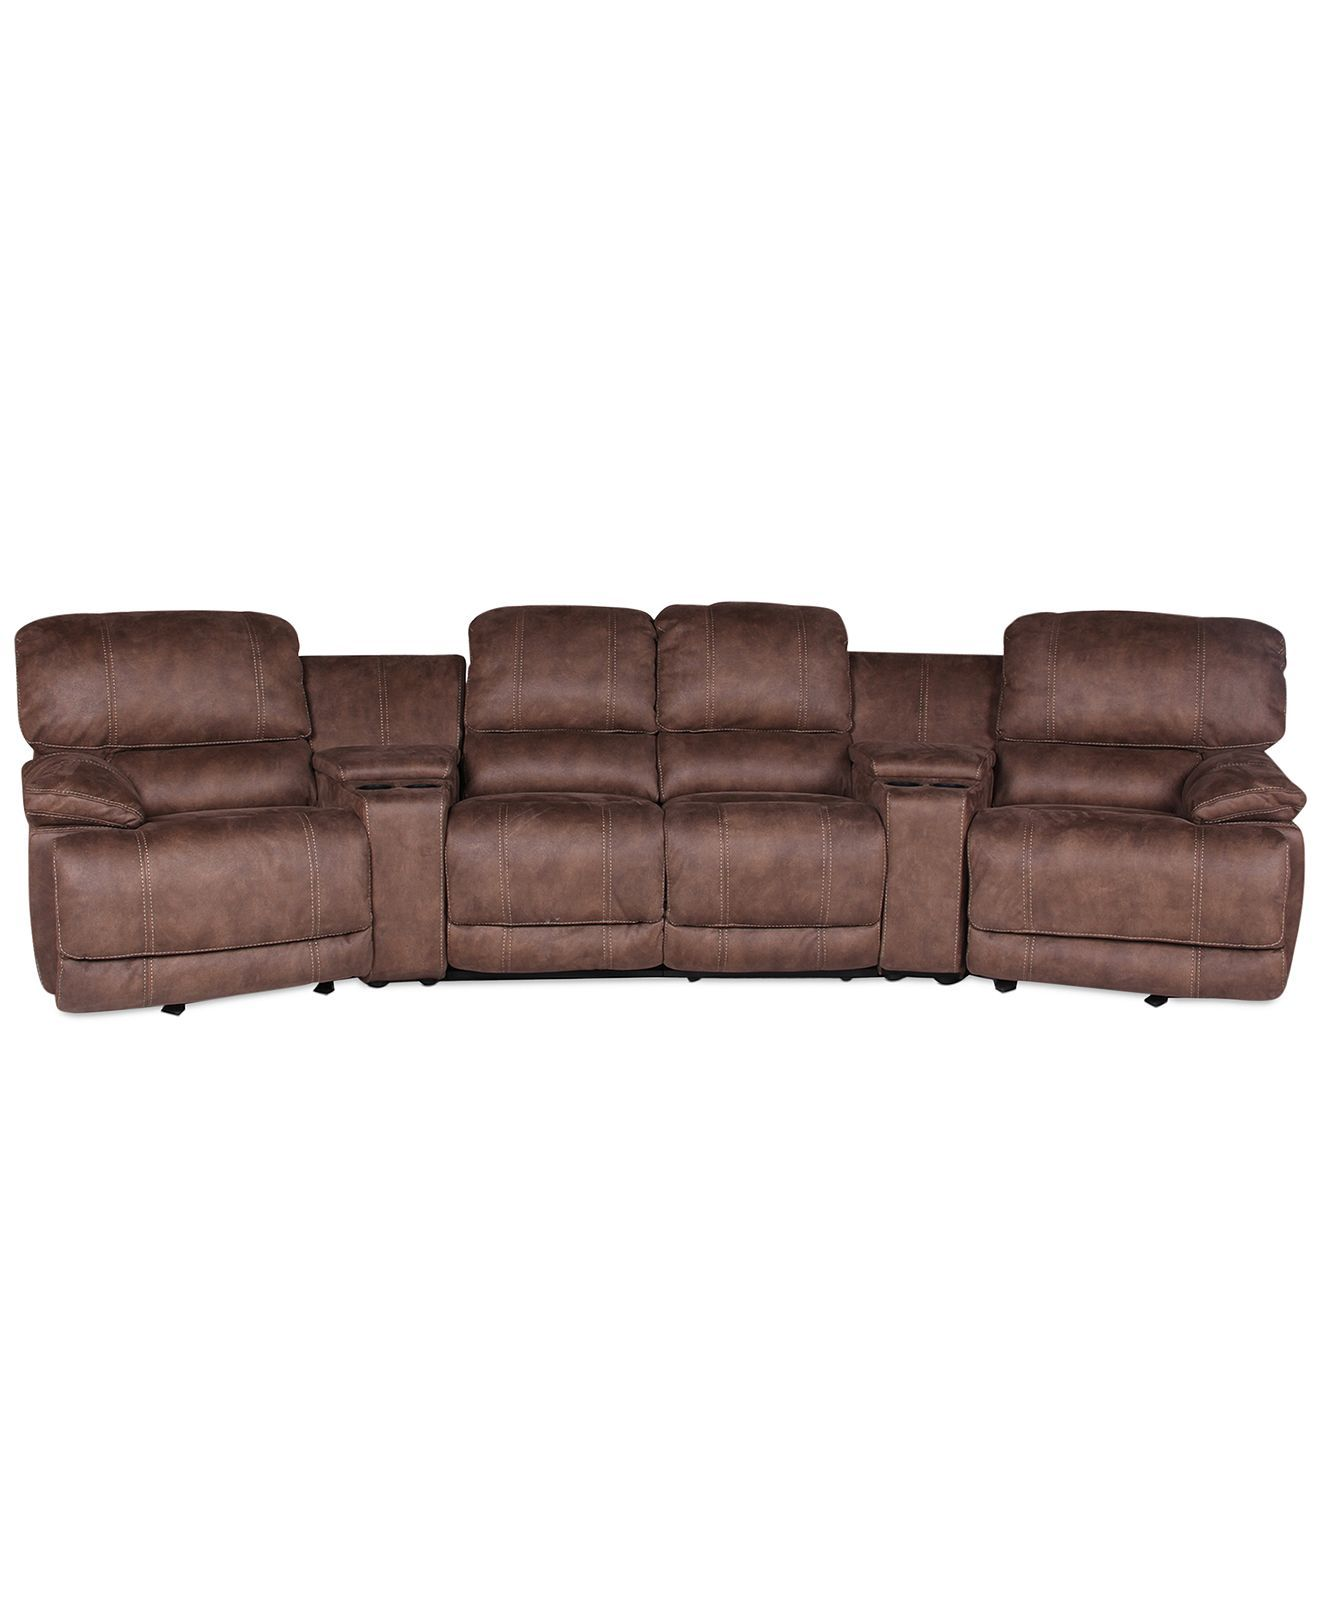 Jedd Fabric 6 Piece Home Theatre Sectional Sofa Sectional Sofas